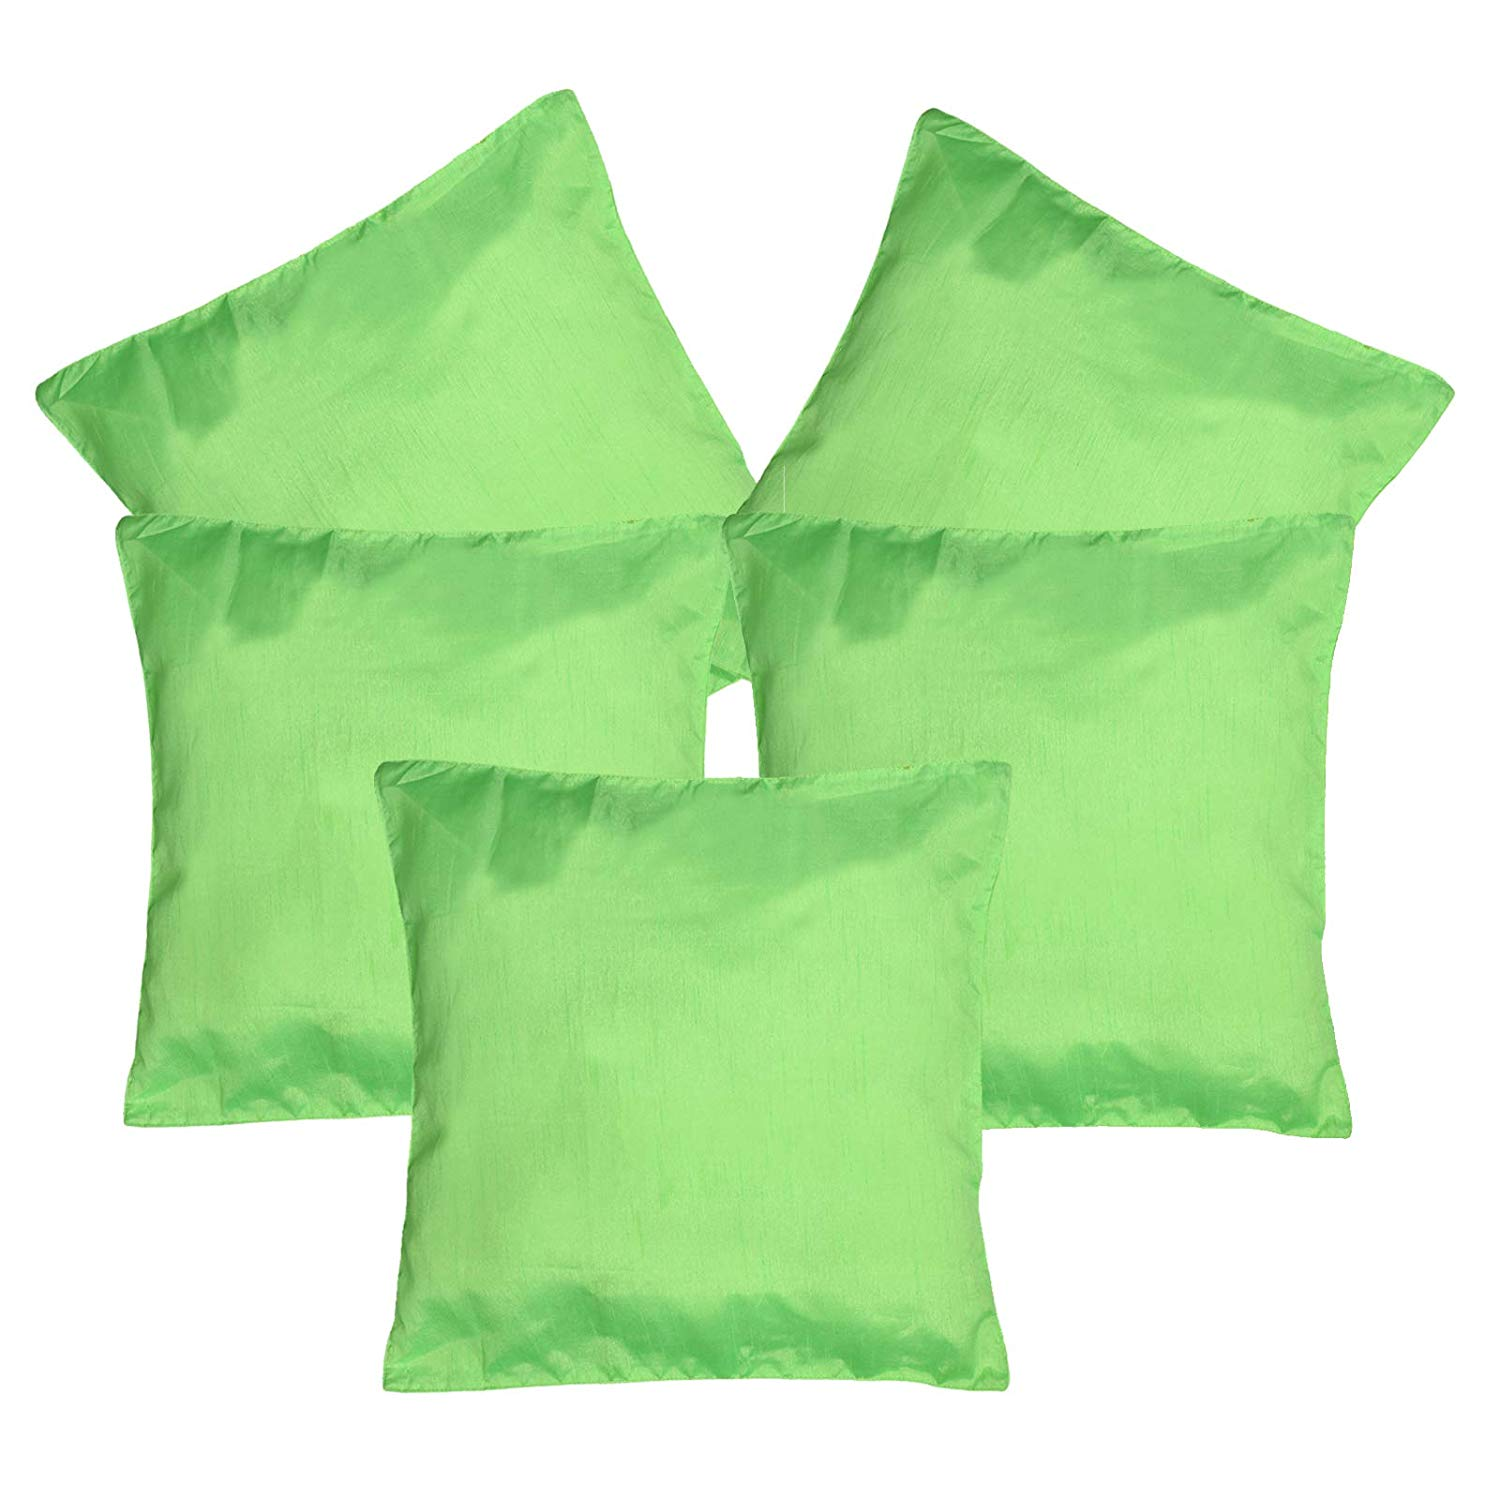 cushion cover pack of 5 green